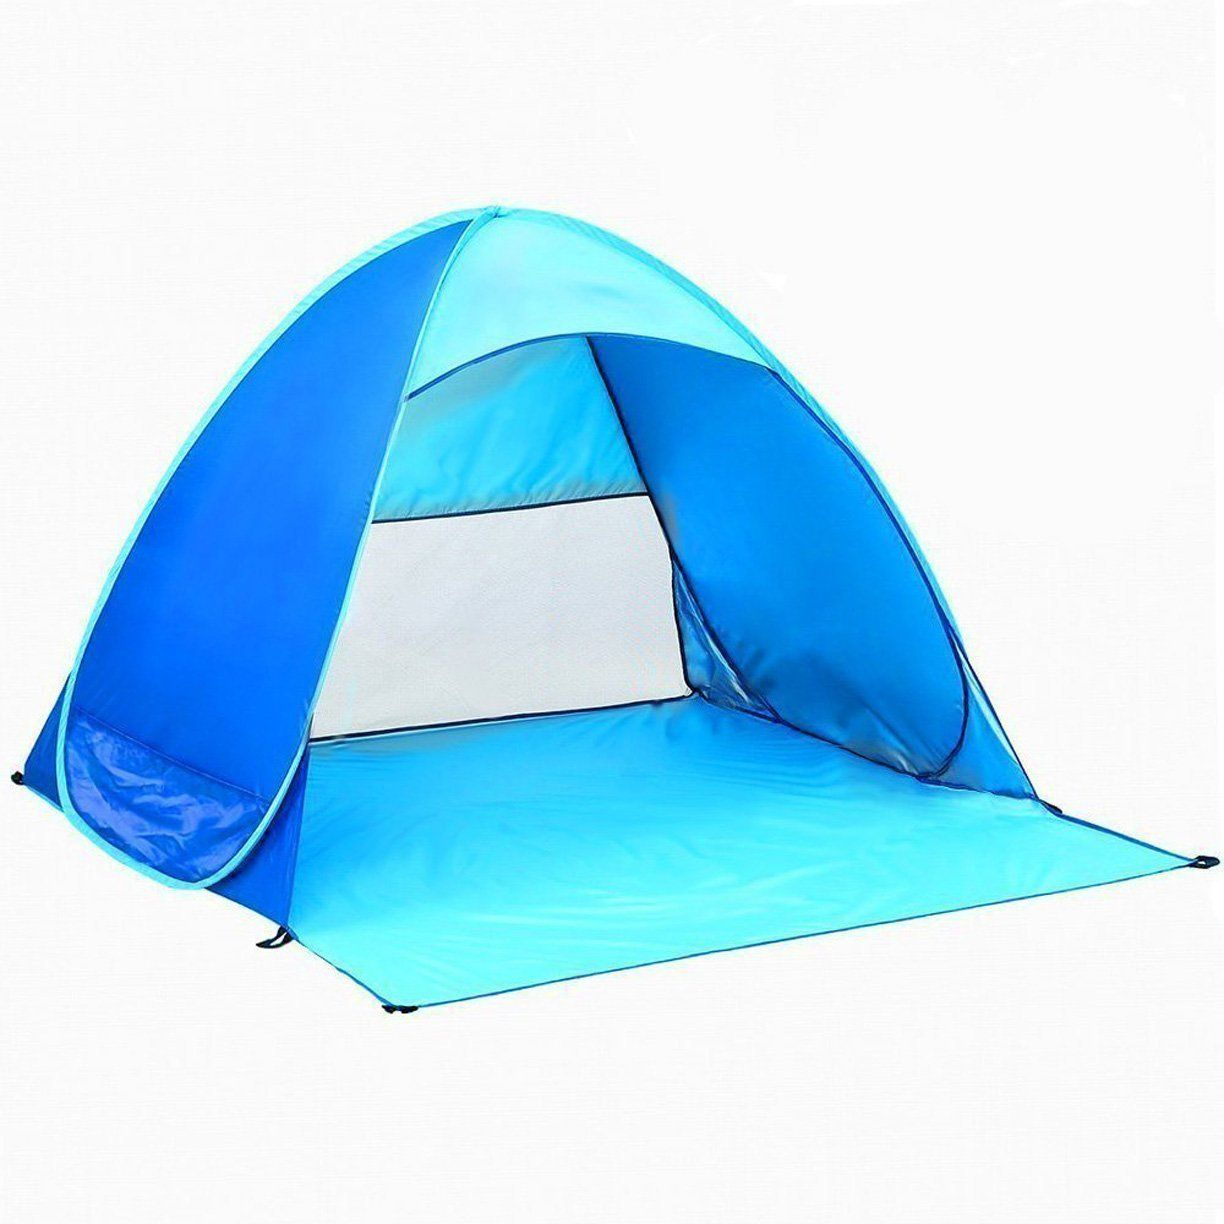 \ Beach Tent  Sunba youth Portable Outdoor Sun Shelter 90% UV Protection  sc 1 st  Pinterest : beach tent uv protection - memphite.com